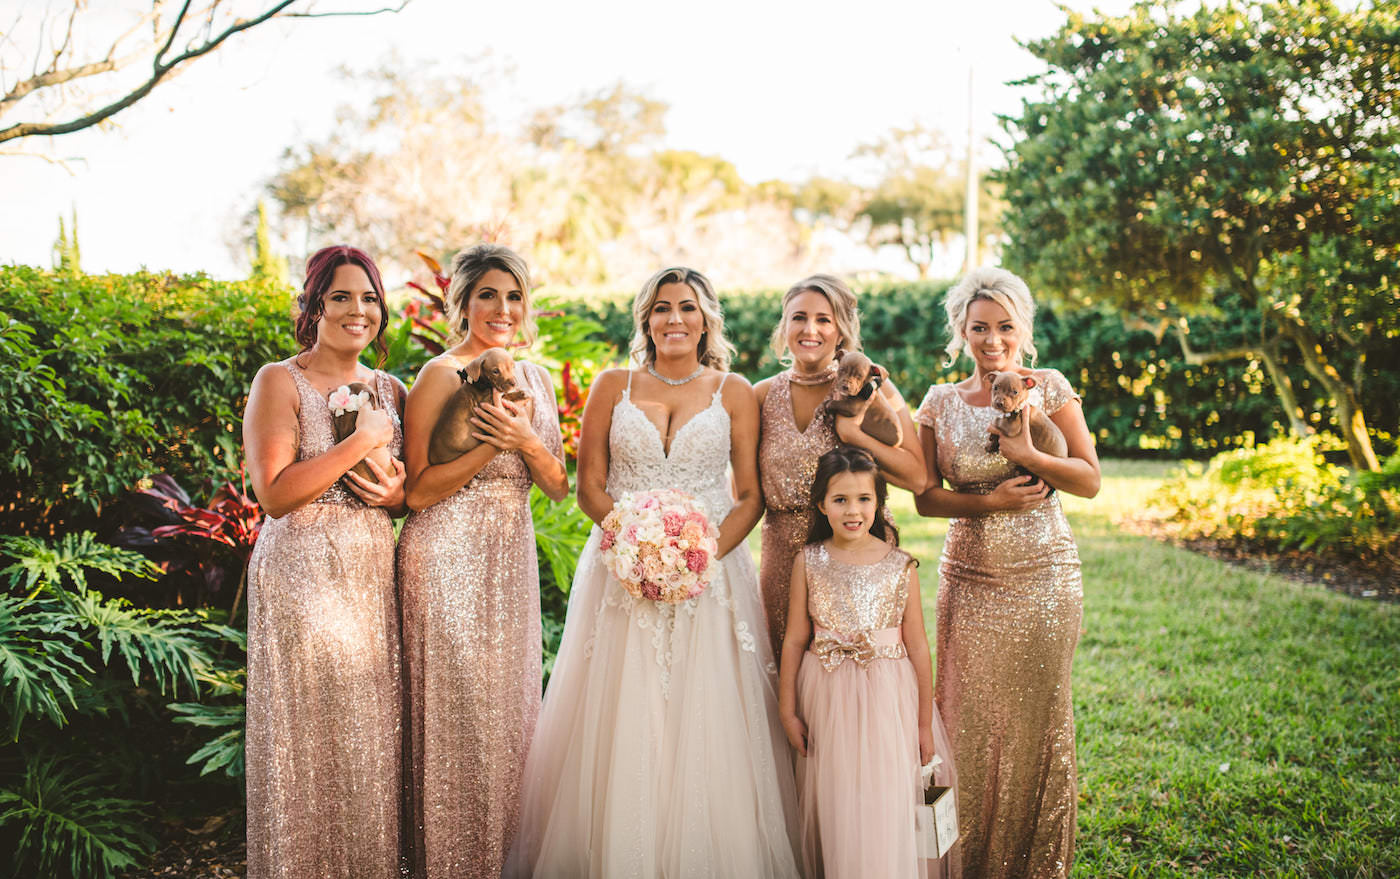 Rose Gold Champagne Metallic Sequin Bridesmaid Dresses | Tampa Wedding with Adoptable Puppies | Puppy Instead of Bridesmaid Bouquet | Champagne Illusion Lace V Neck Spaghetti Strap Wedding Dress Bridal Gown |